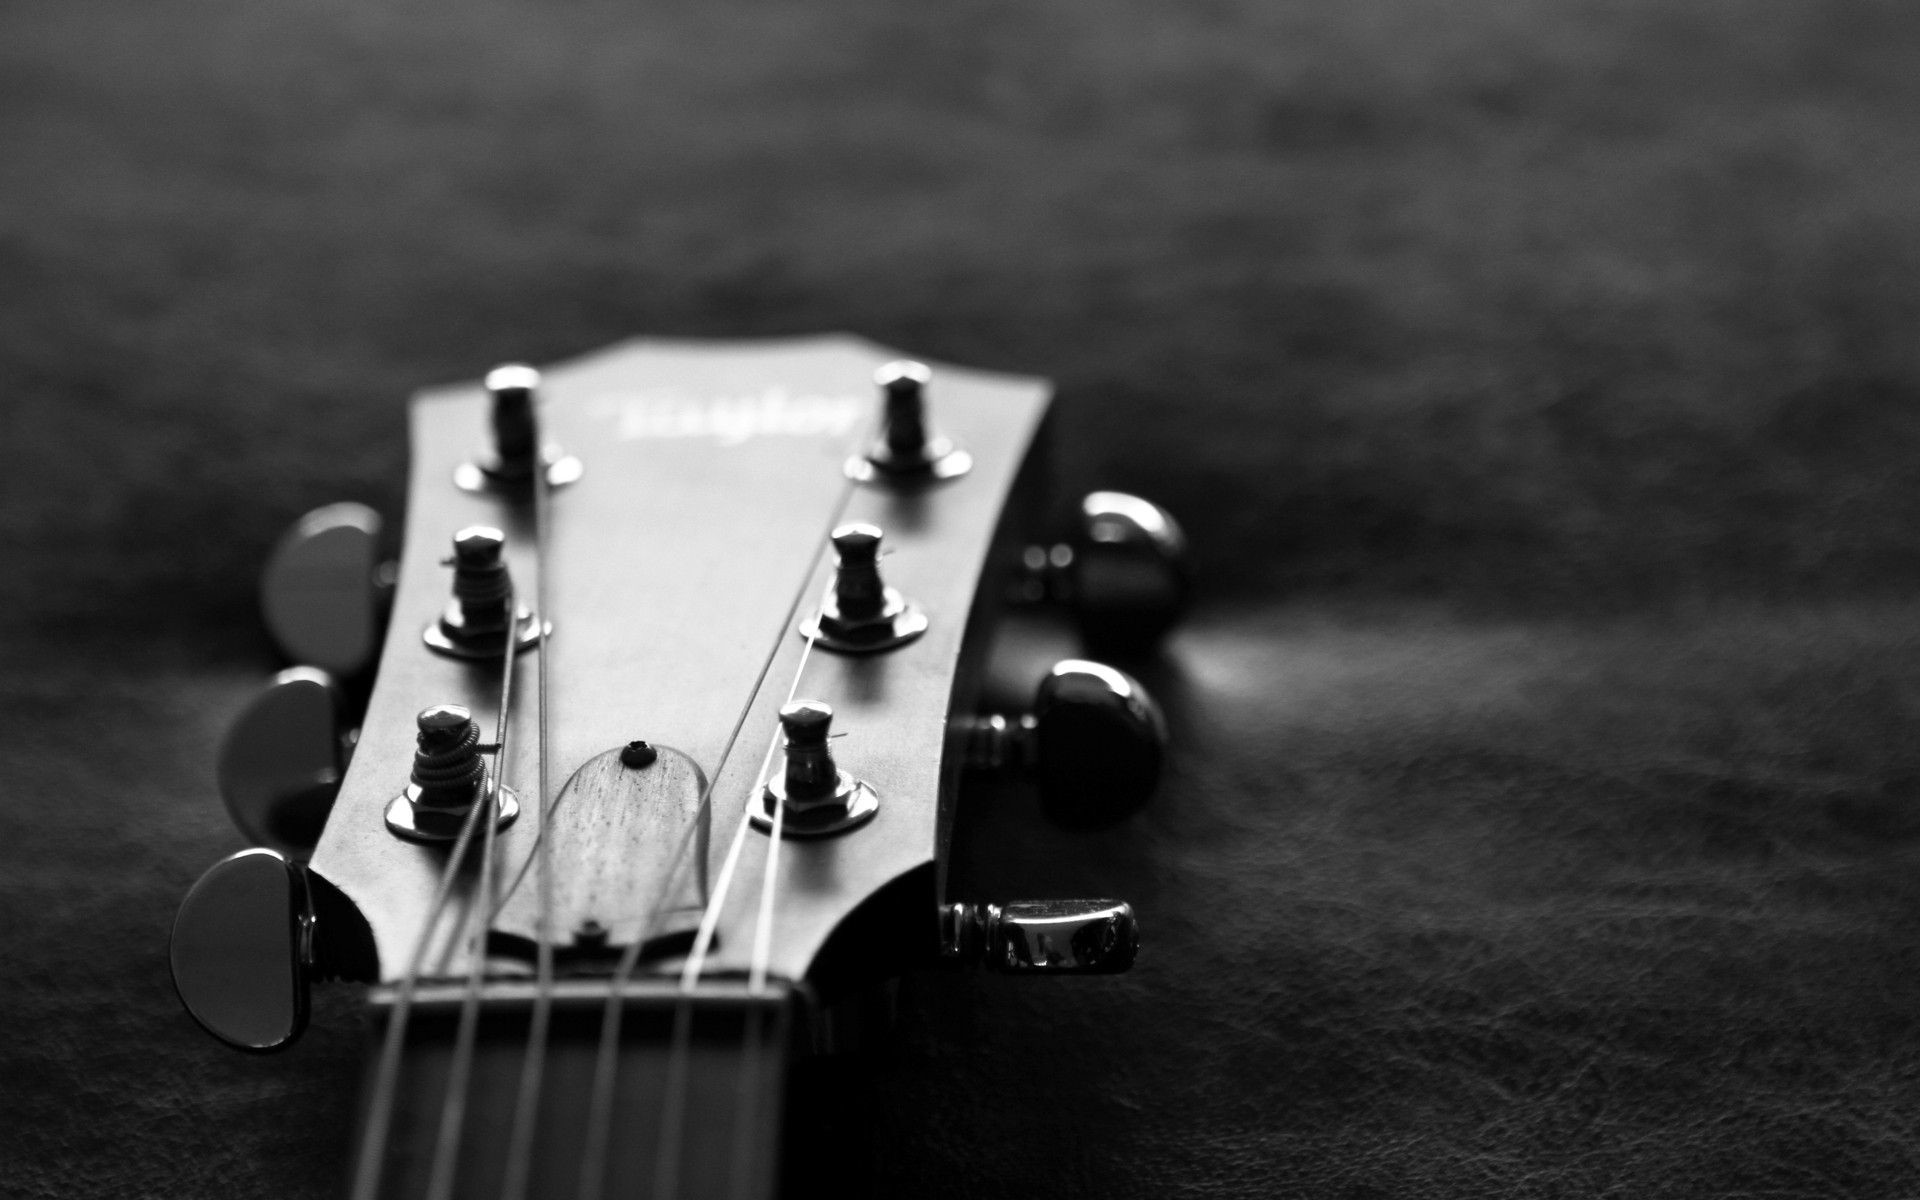 1920x1200 Cool Guitar Wallpapers Hd Wallpapers Pinterest Guitars Wallpaper And Hd Wallpaper